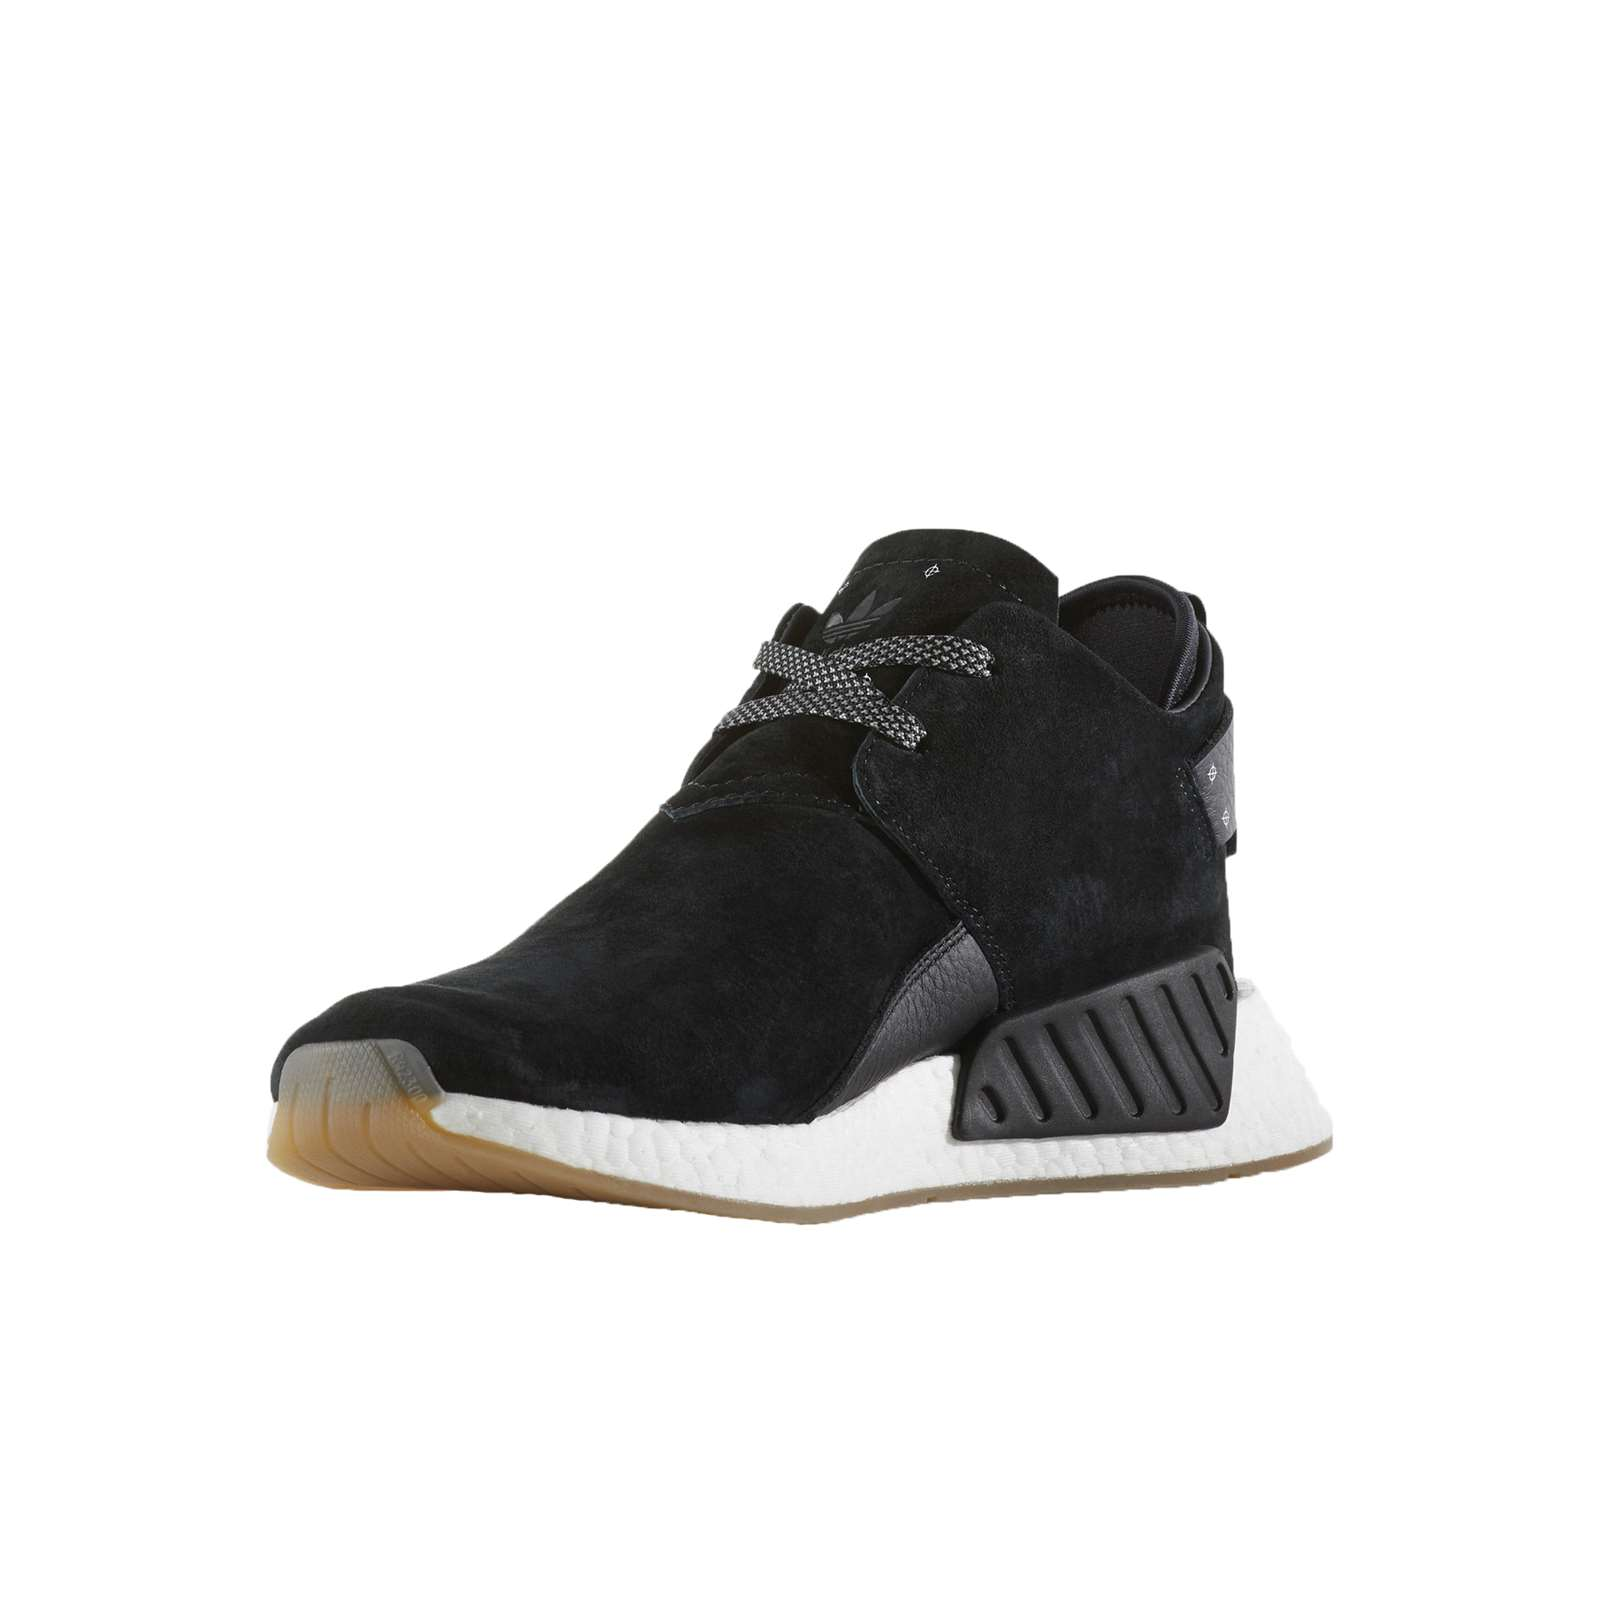 Adidas Men Nmd C2 Sneakers by Adidas